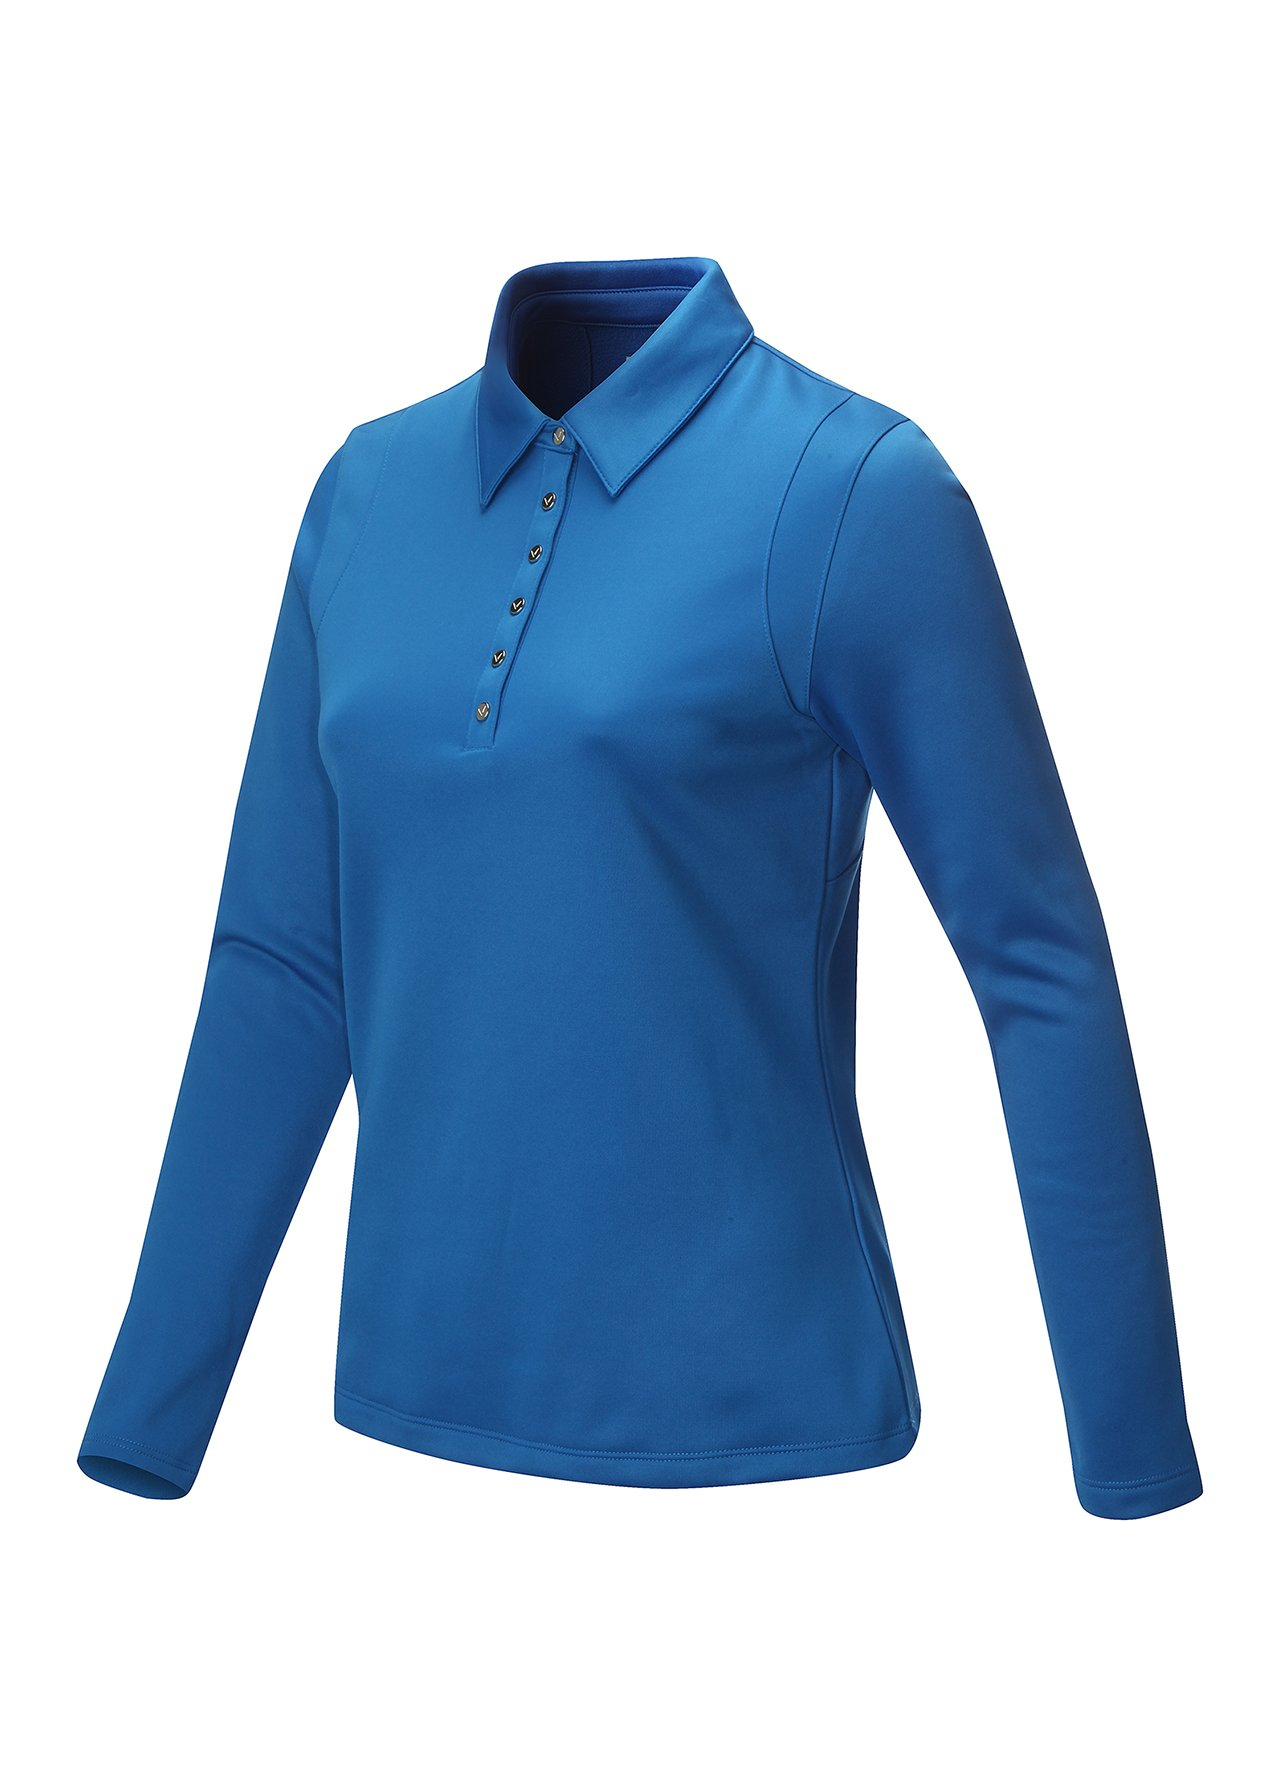 Ladies clothing ladies shirts callaway golf ladies for Golf polo shirts for women